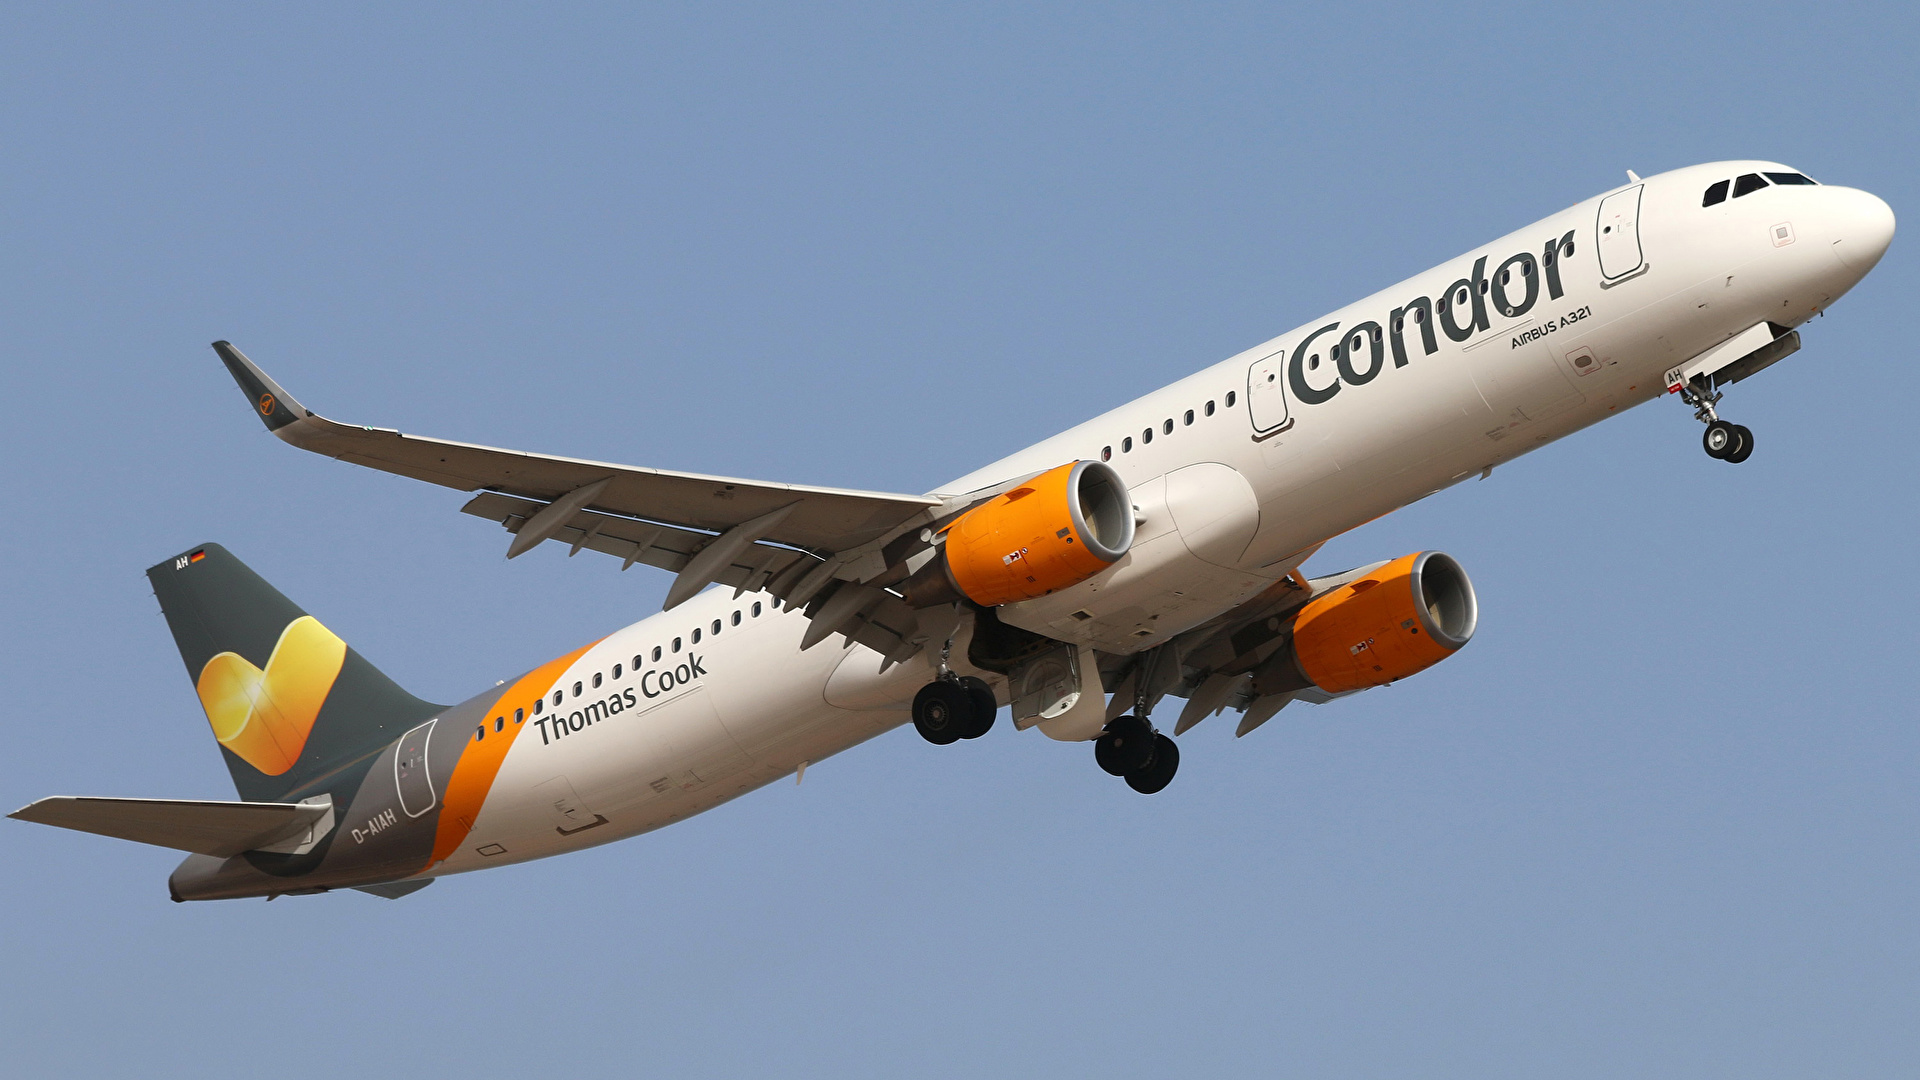 Images Airplane Passenger Airplanes Airbus A321 211 Condor 1920x1080 1920x1080